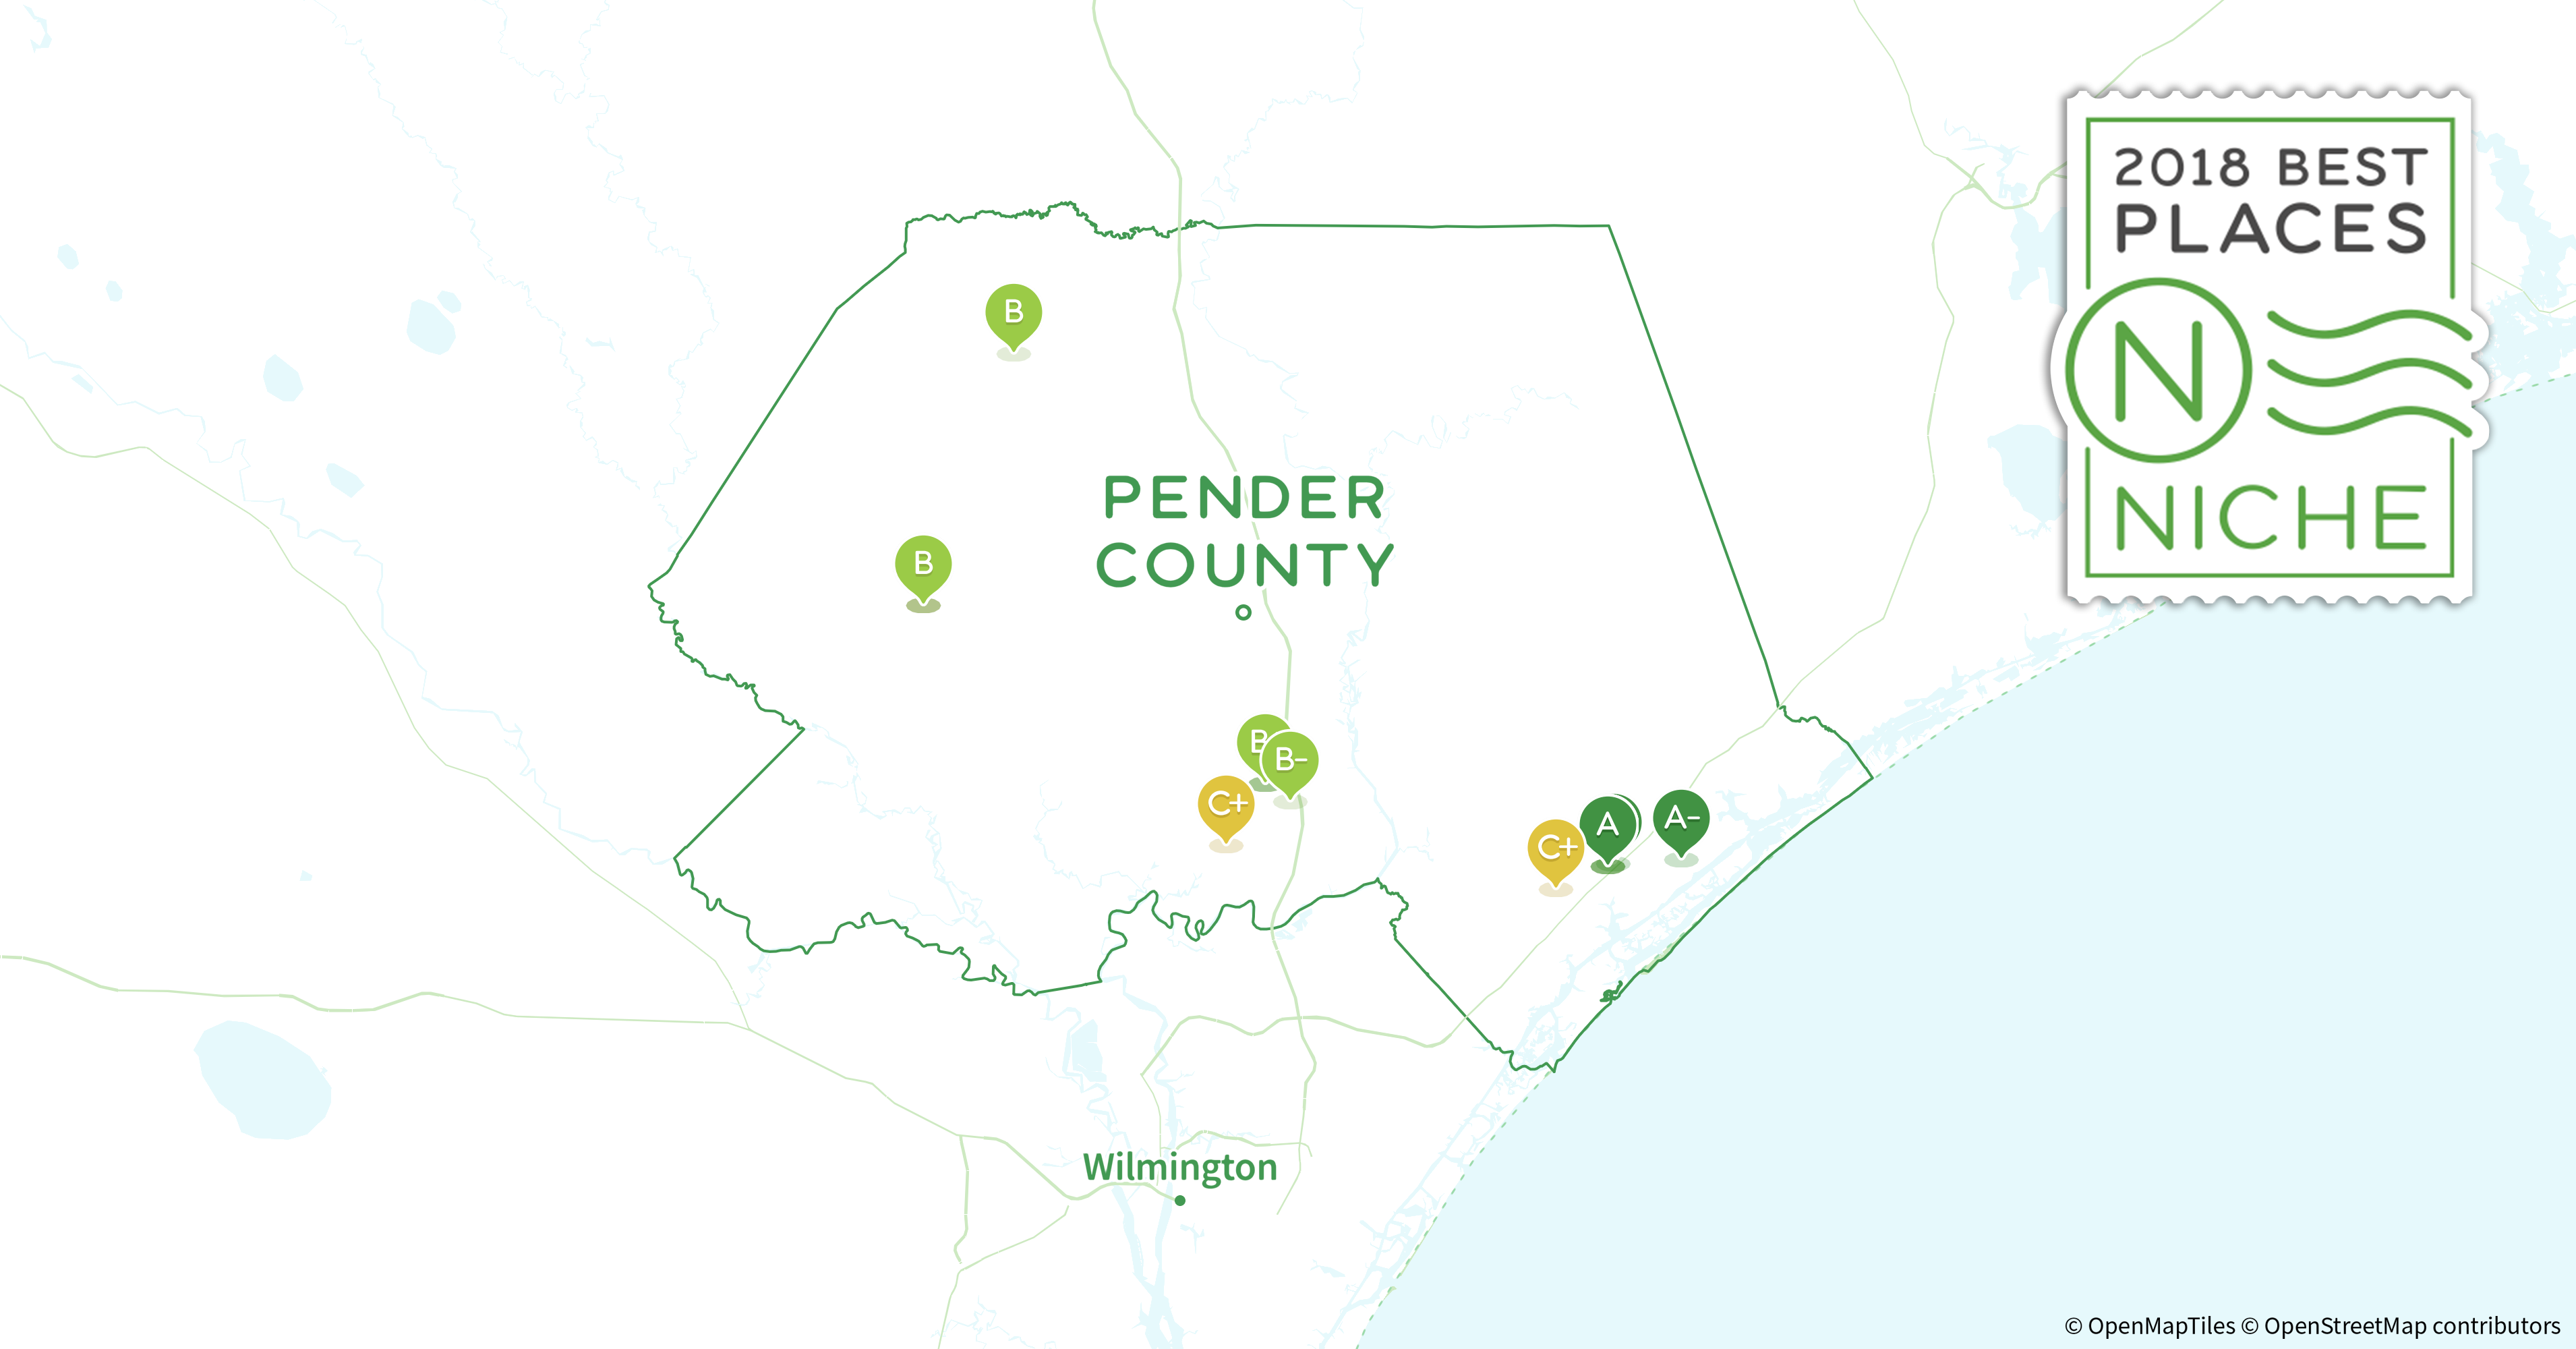 Pender County Nc Map.2018 Safest Places To Live In Pender County Nc Niche